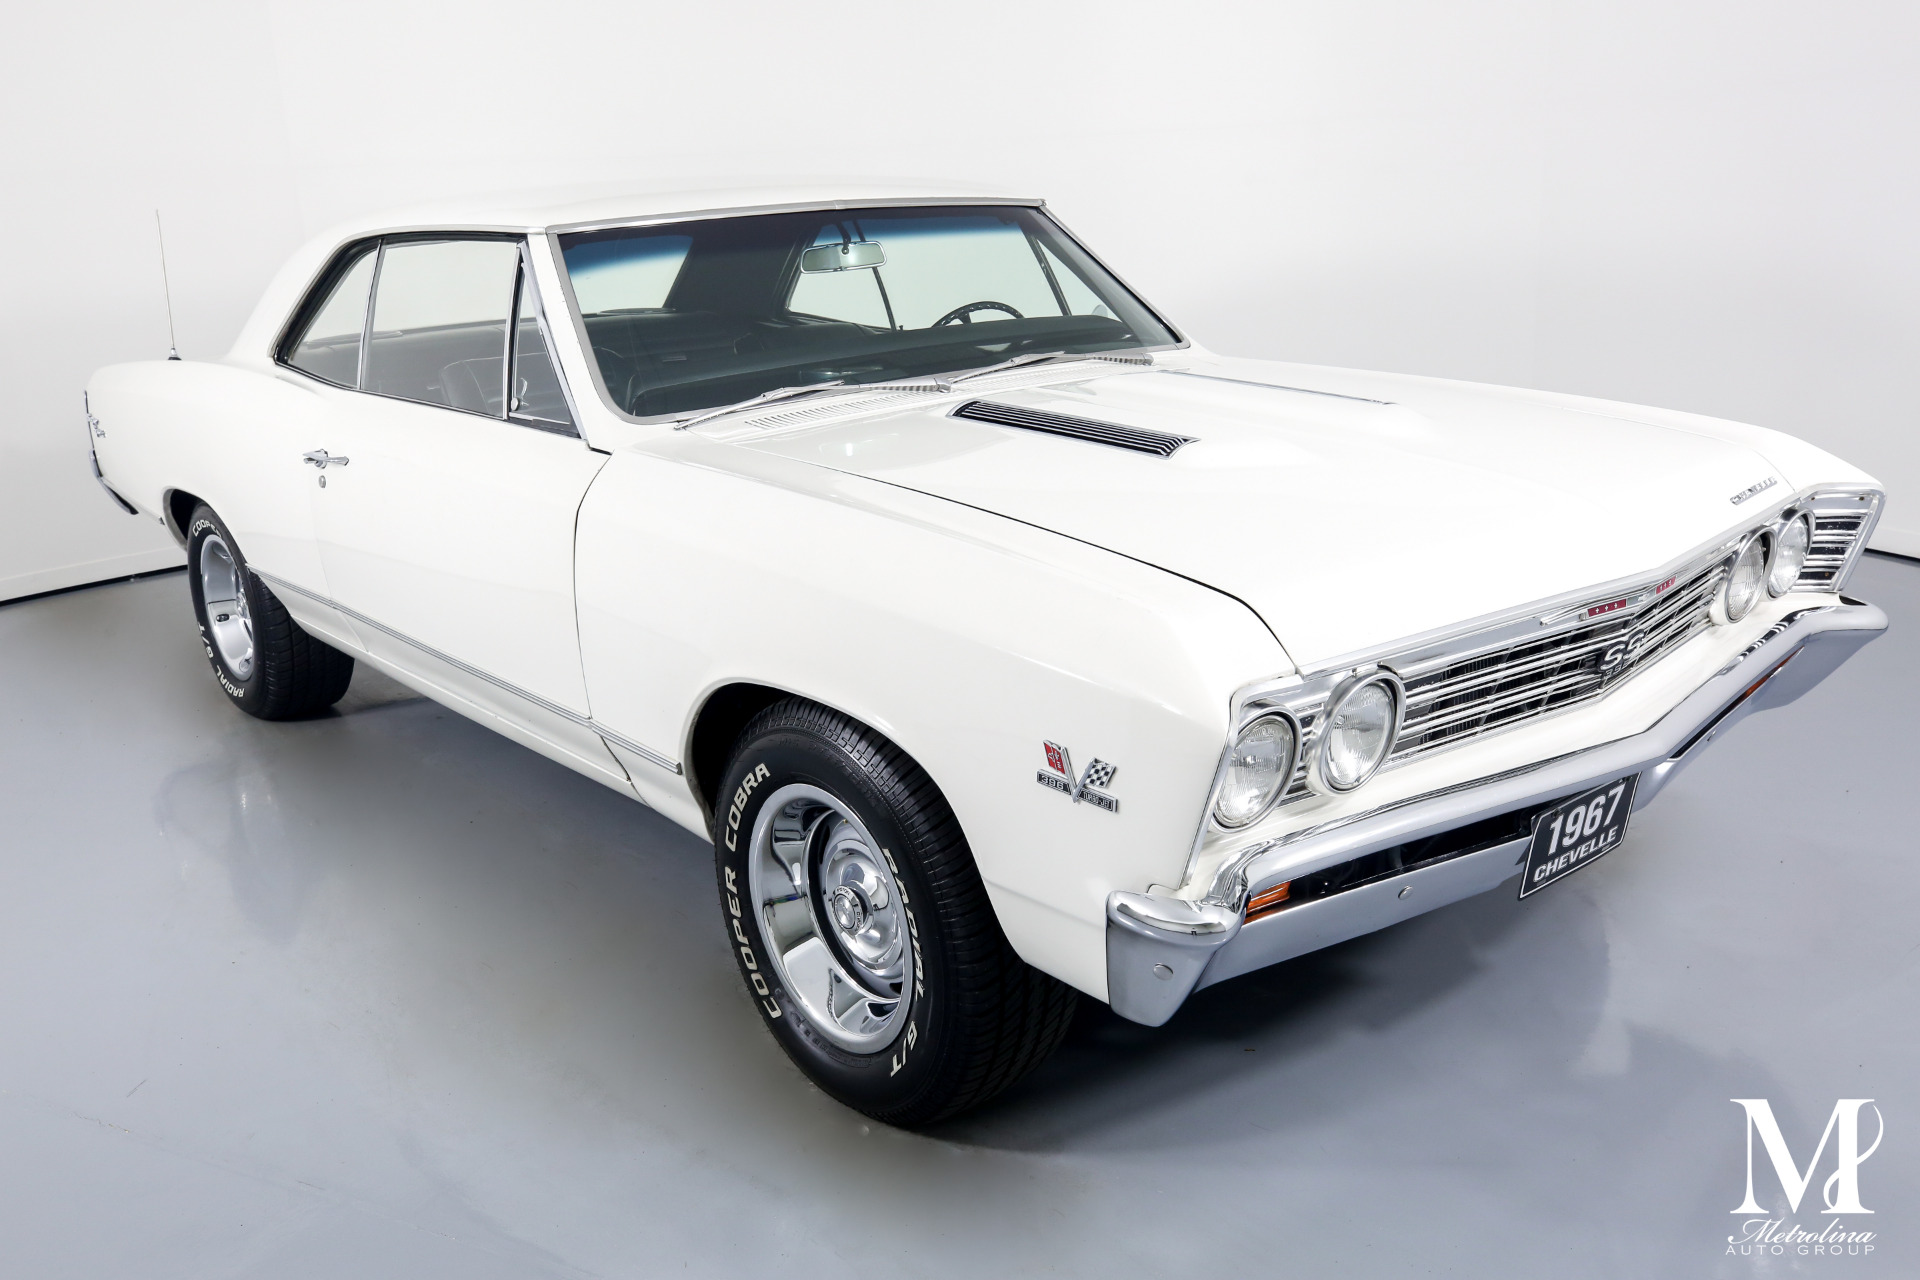 Used 1967 CHEVROLET SUPERSPORT 396 for sale $69,996 at Metrolina Auto Group in Charlotte NC 28217 - 2